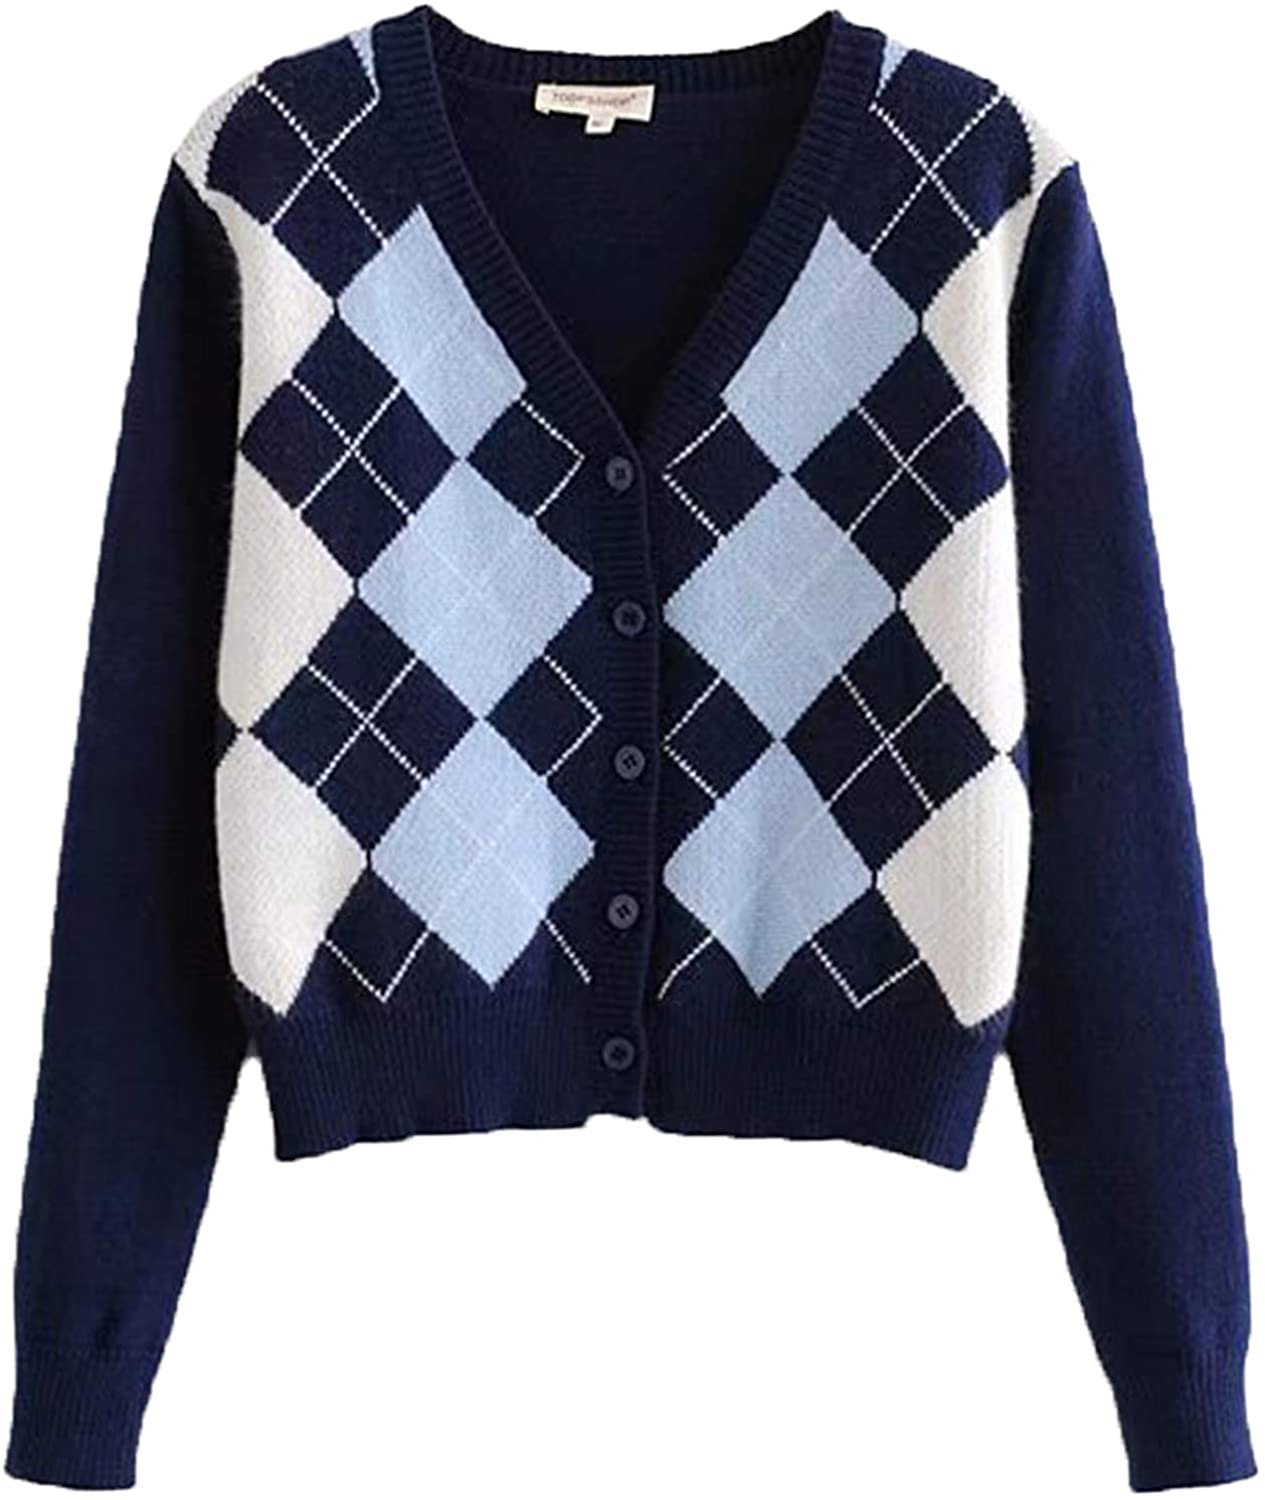 YUESUO Womens Cardigans Sweaters Casual Diamond Check Knit Coat Long Sleeve Button Down Crop Tops.